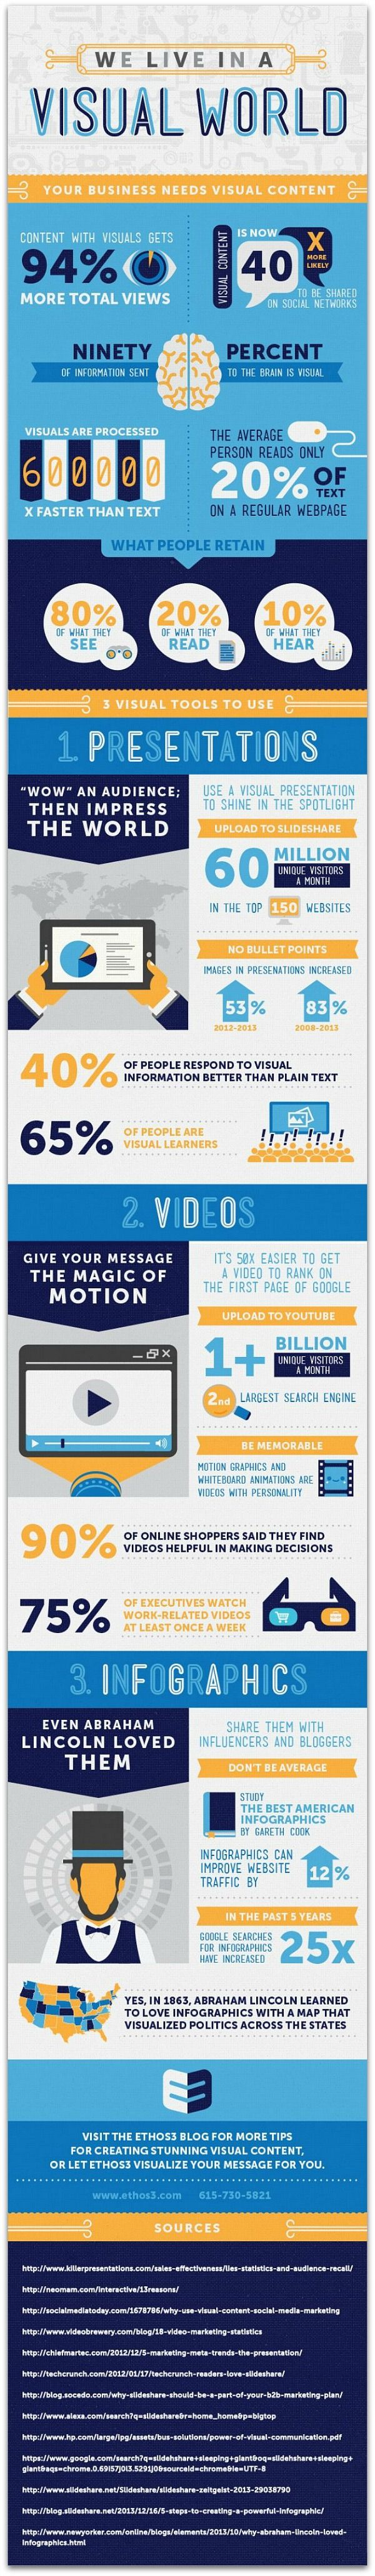 Infographic: Why visual content is better than text | Articles | Main